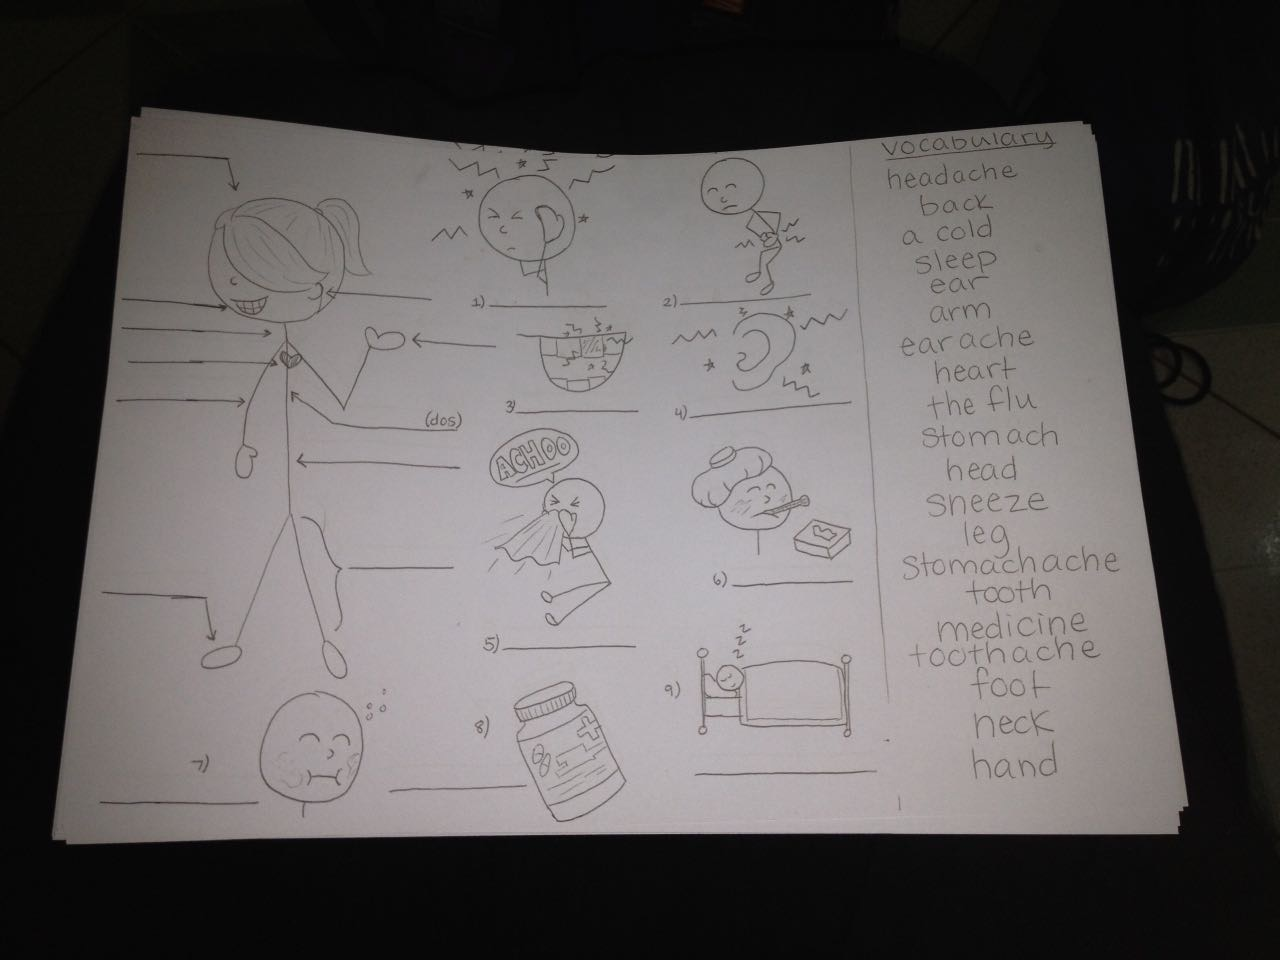 A Worksheet Kaitlyn Made By Hand For Our English Students